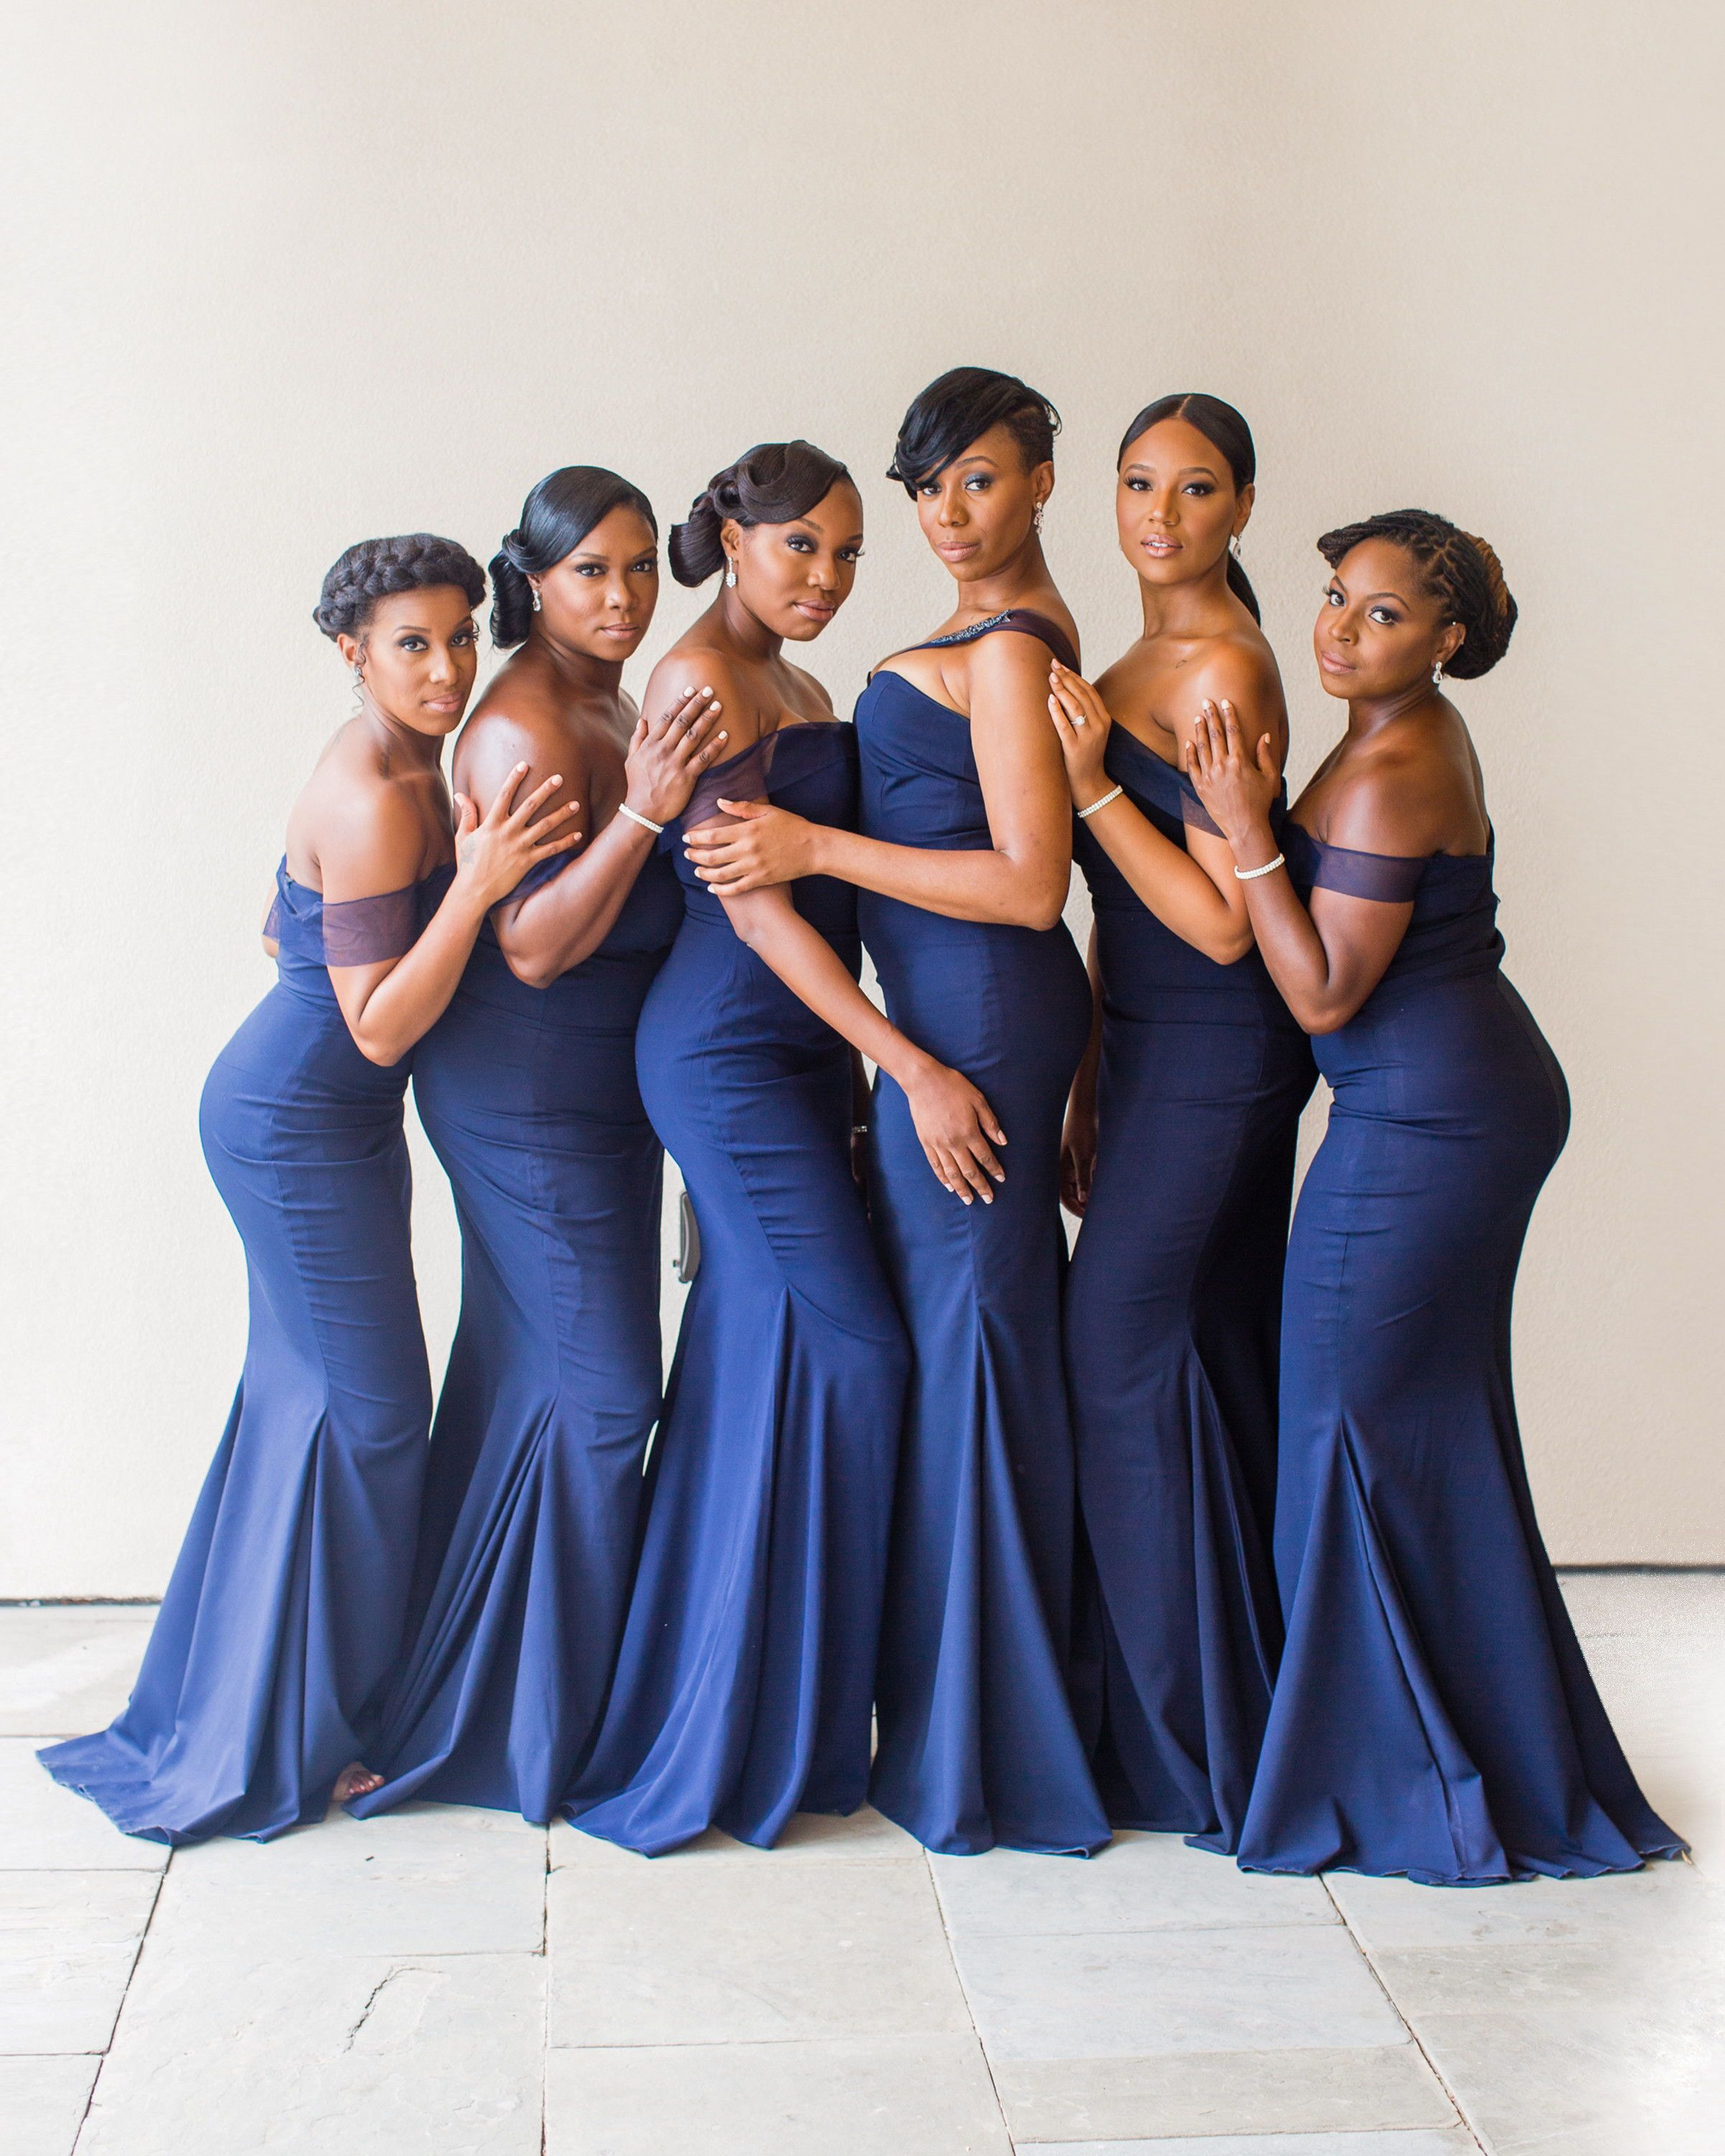 38 Looks That Prove Bridesmaids Dresses Can Be Chic Bridesmaid Bridesmaid Gown Chic Bridesmaid Dresses [ 3000 x 2400 Pixel ]